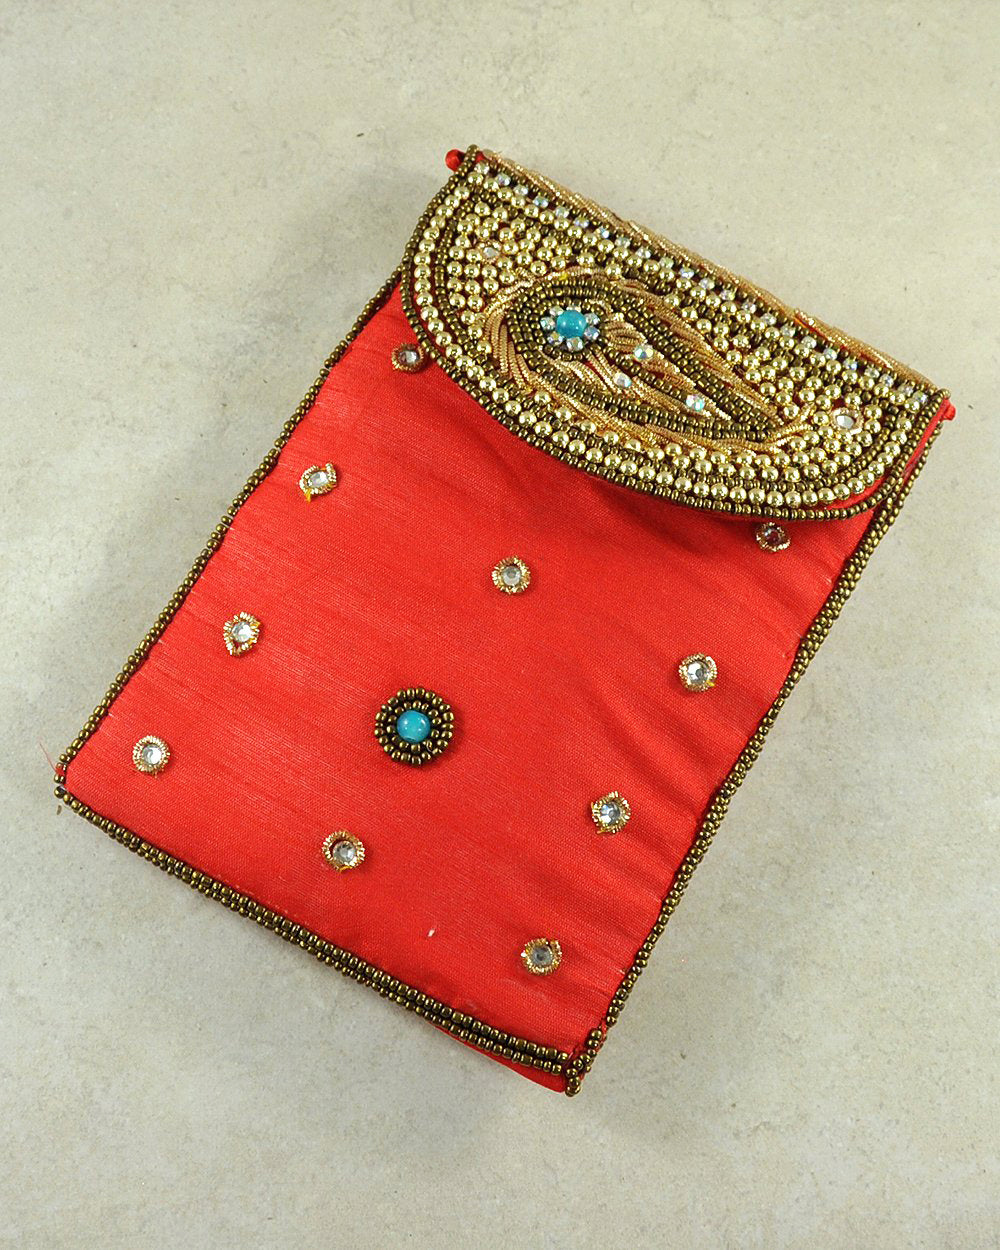 Designer Sequins and Crystals Embroidery Silk Crossbody Bag - Red